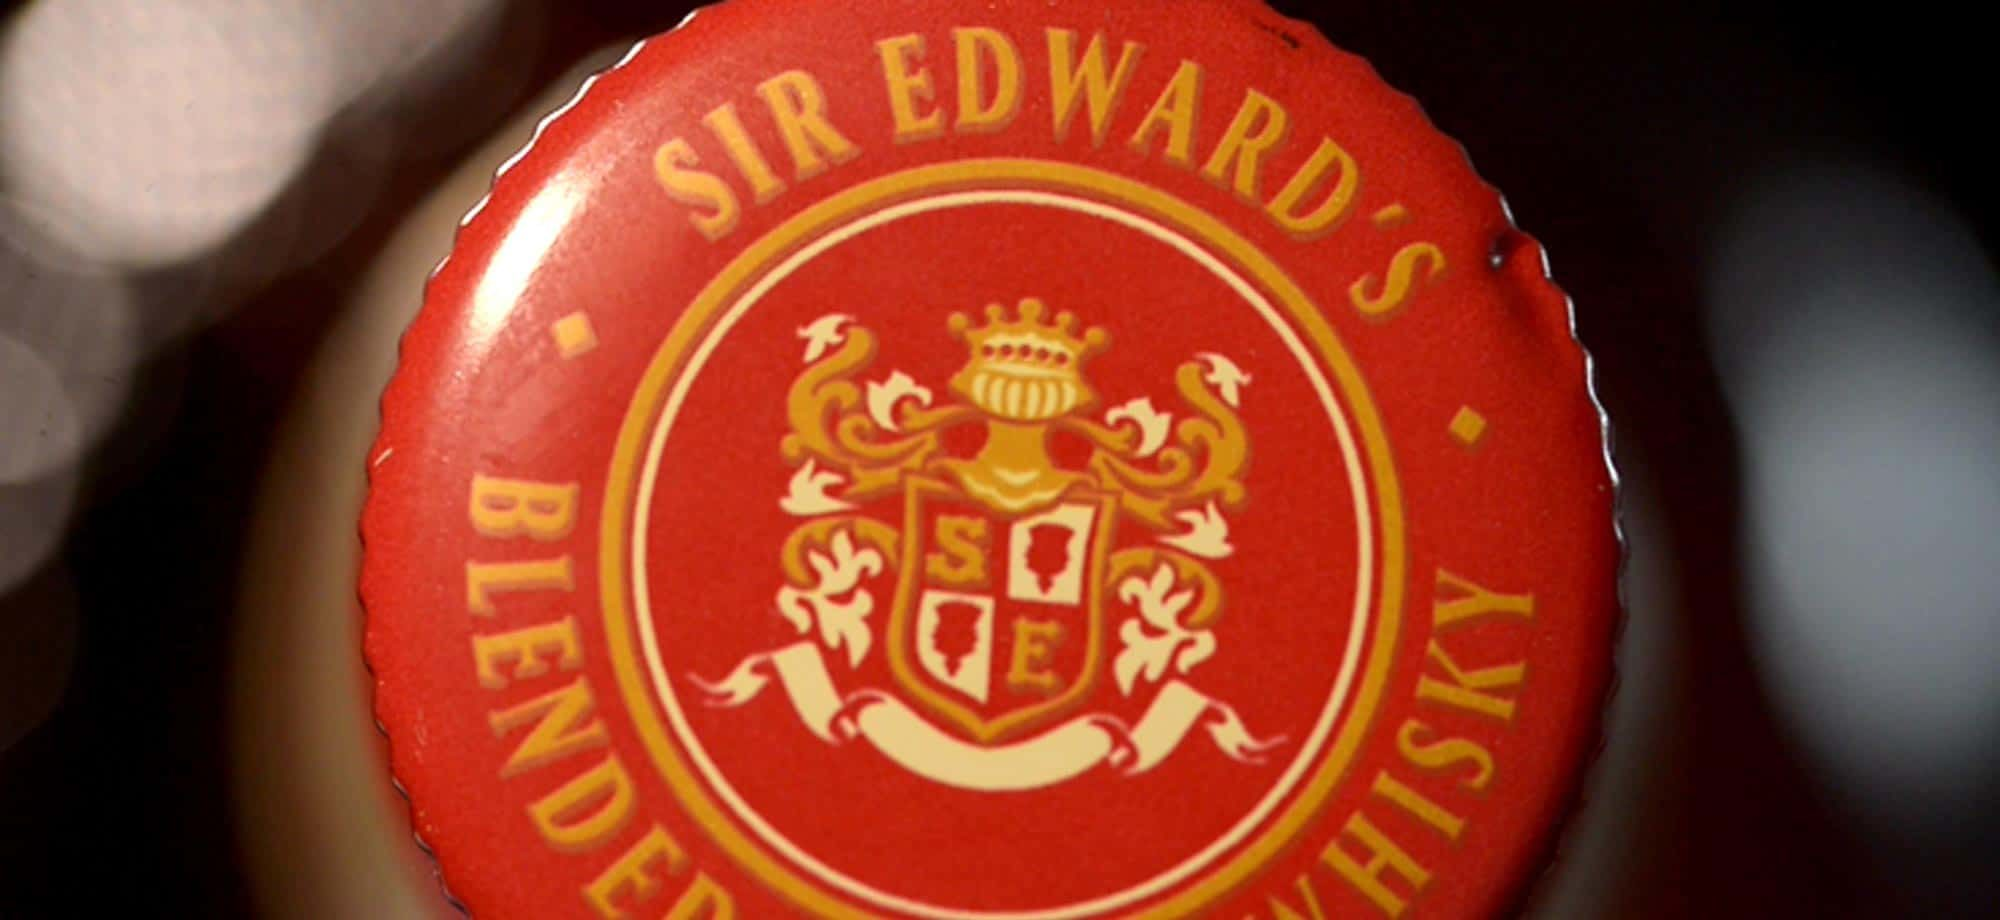 Sir Edward's origins